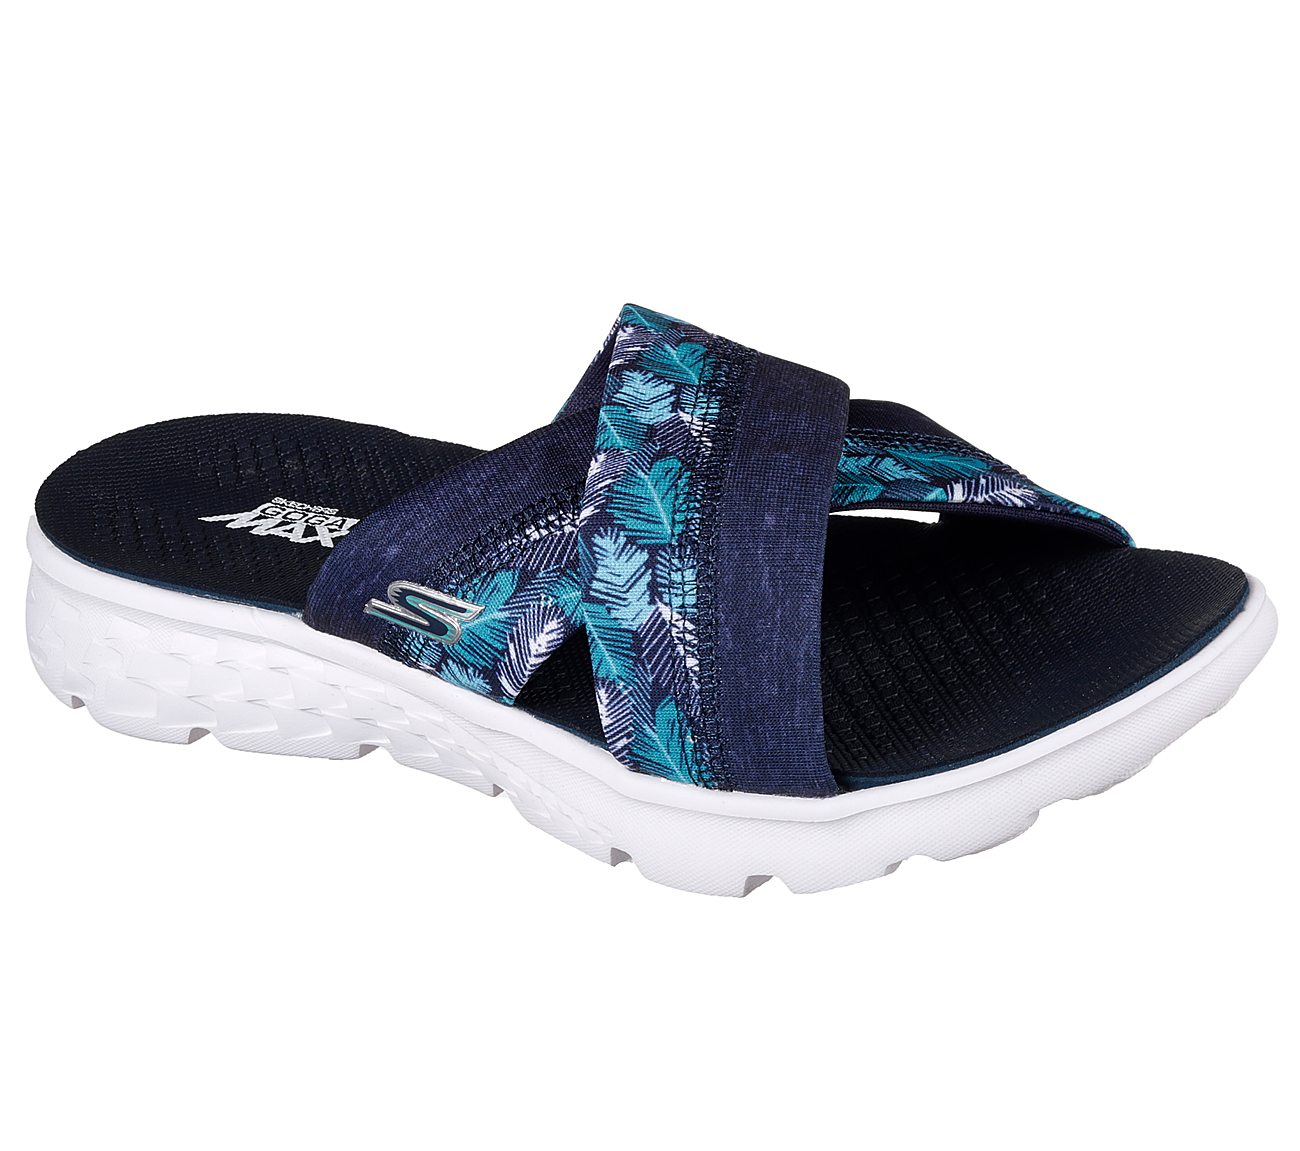 Buy Skechers Skechers On The Go 400 Tropical Skechers Performance Shoes